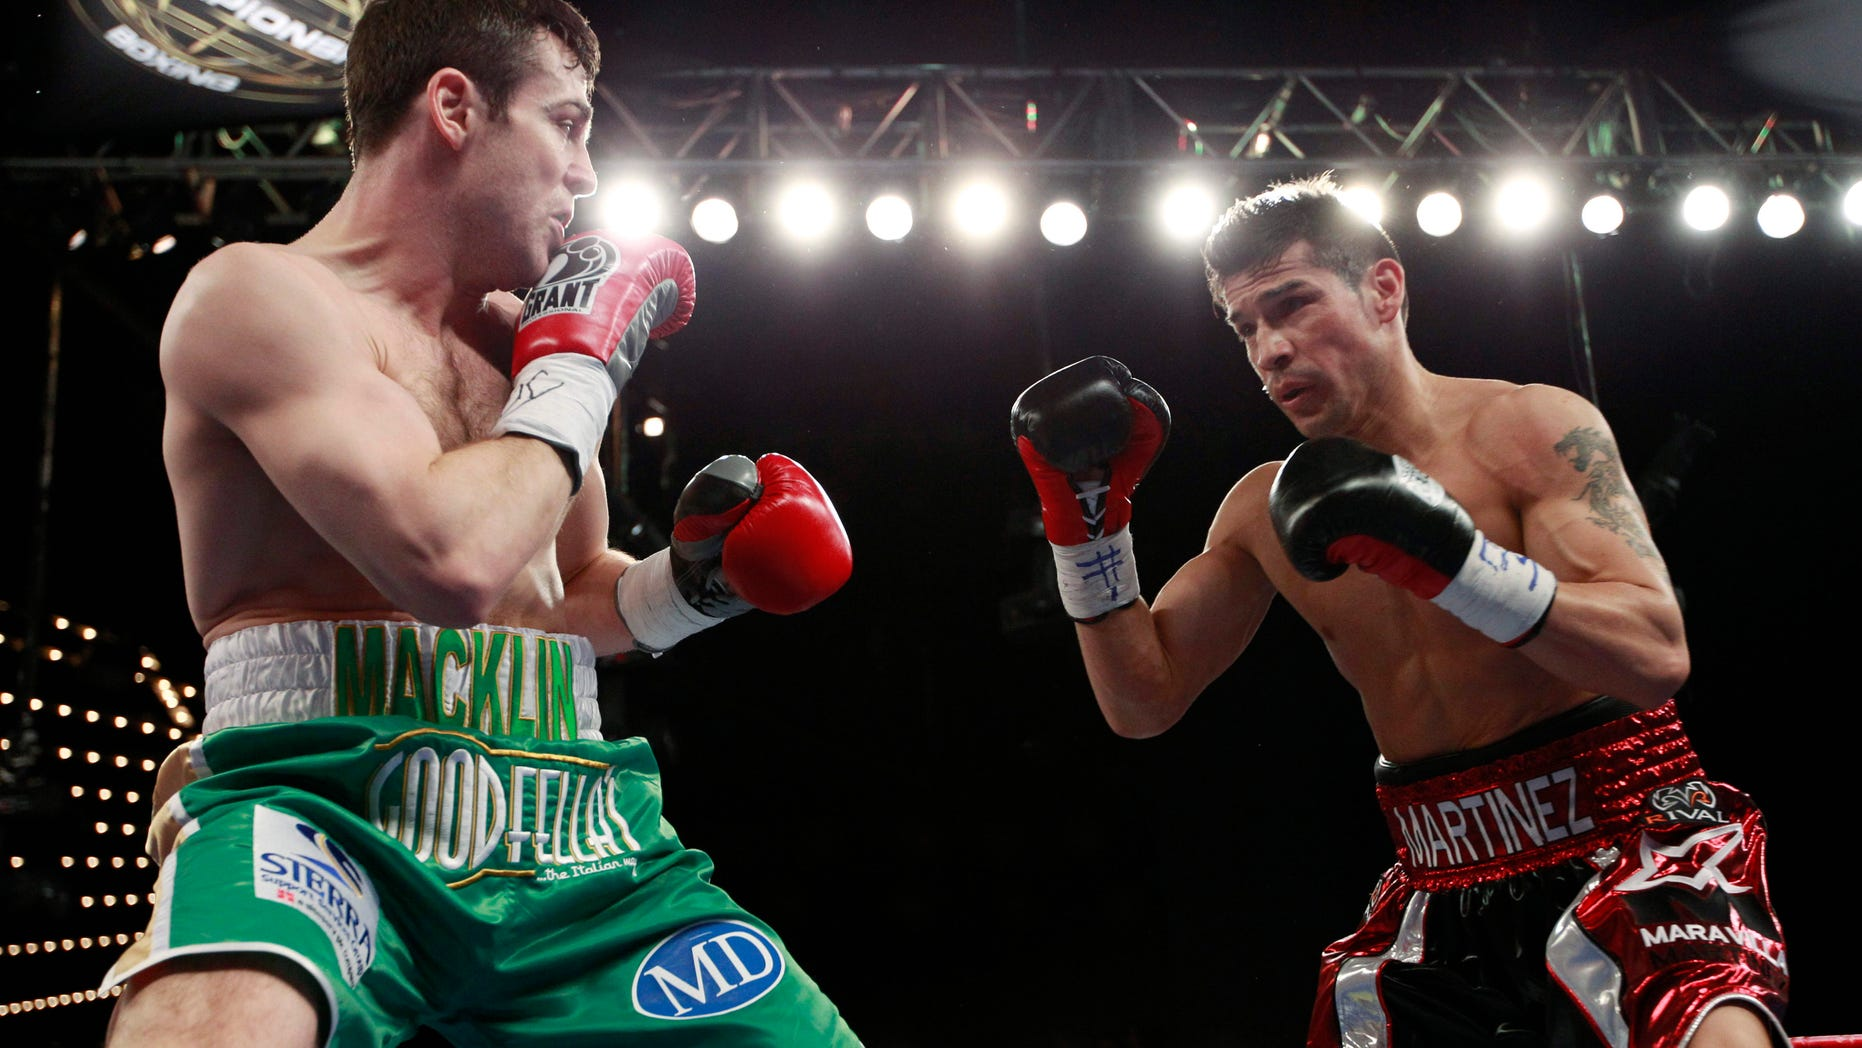 Matthew Macklin, left, and Sergio Martinez eye each other during the second round of a middleweight boxing bout Saturday, March 17, 2012, in New York. Martinez won the fight when it was stopped after the 11th round. (AP Photo/Frank Franklin II)